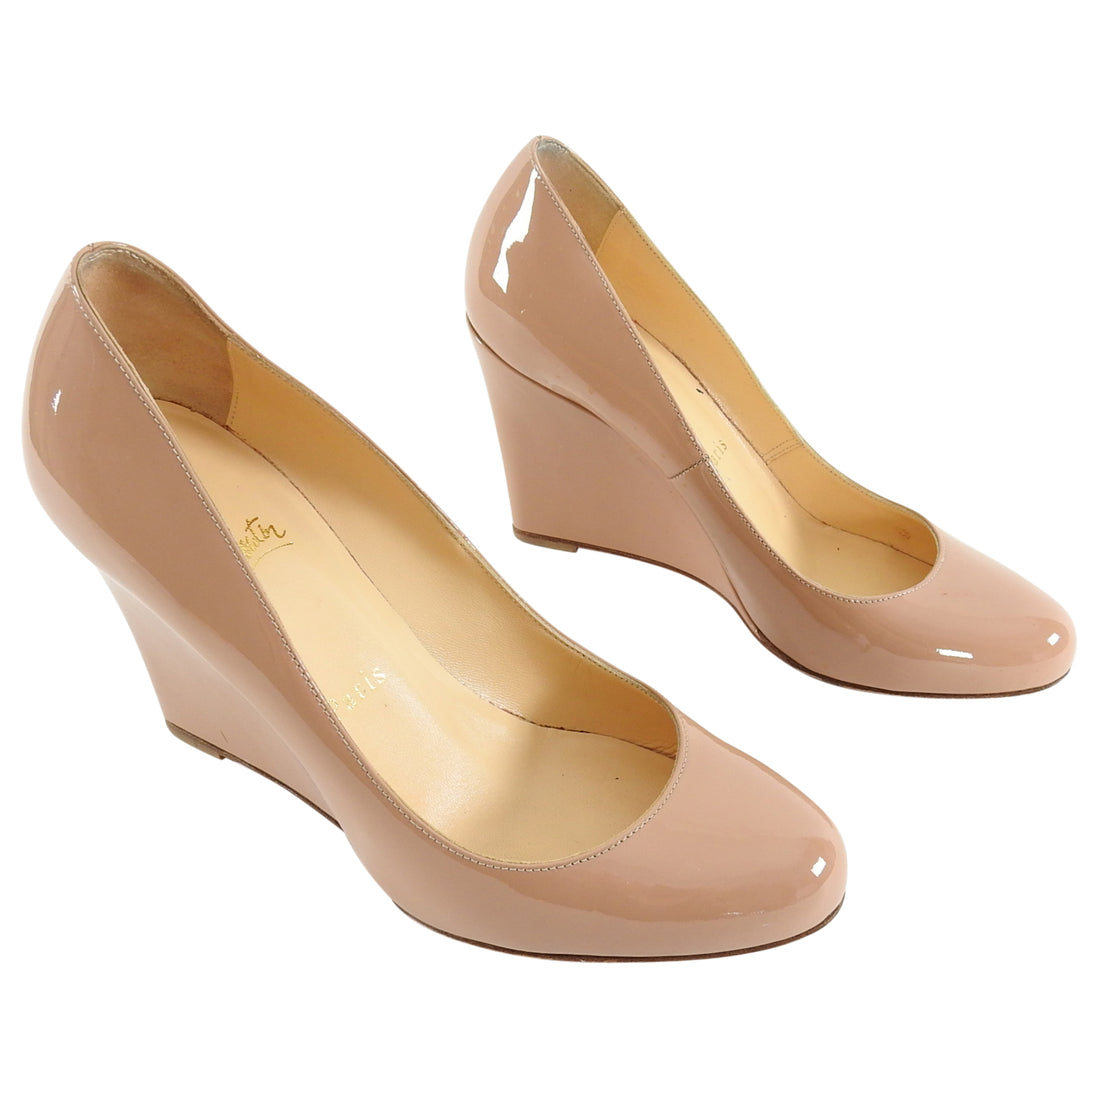 Christian Louboutin Nude Patent Ron Ron Zeppa Wedge Pumps